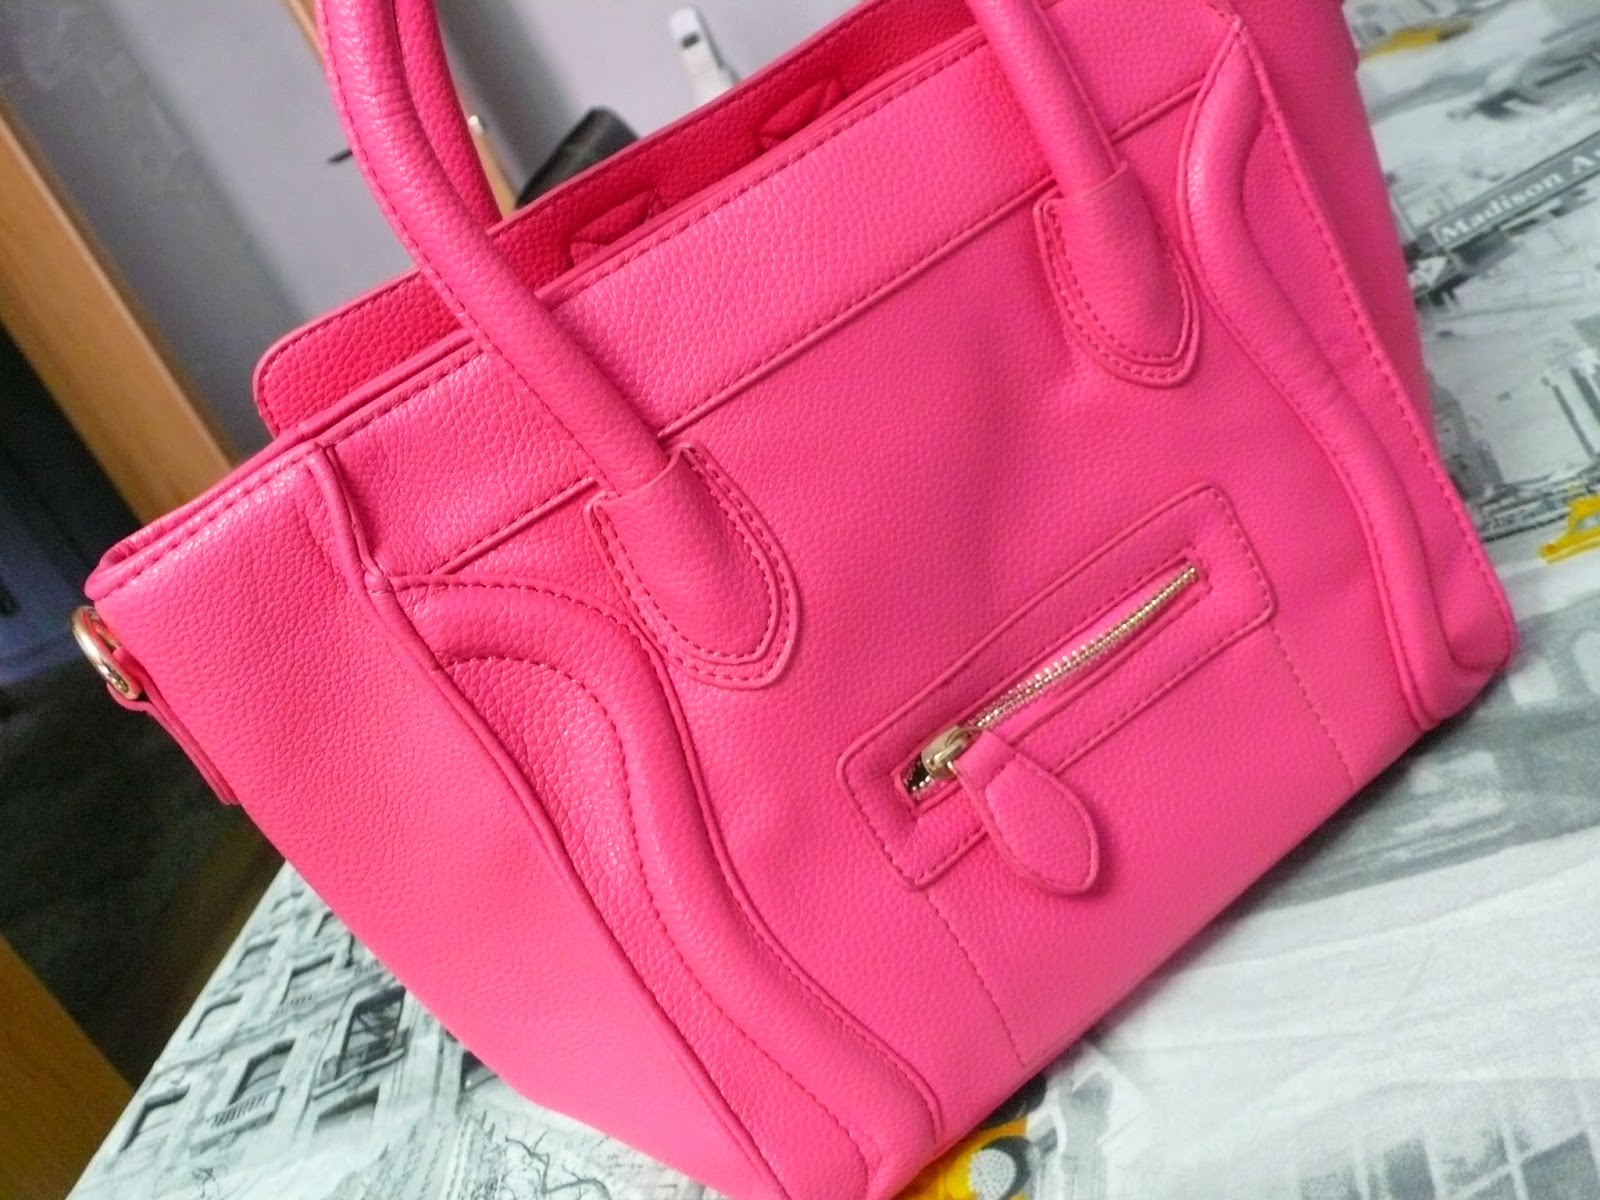 http://www.oasap.com/shoulder-bags/37224-sweet-smile-face-bag.html?fuid=98518